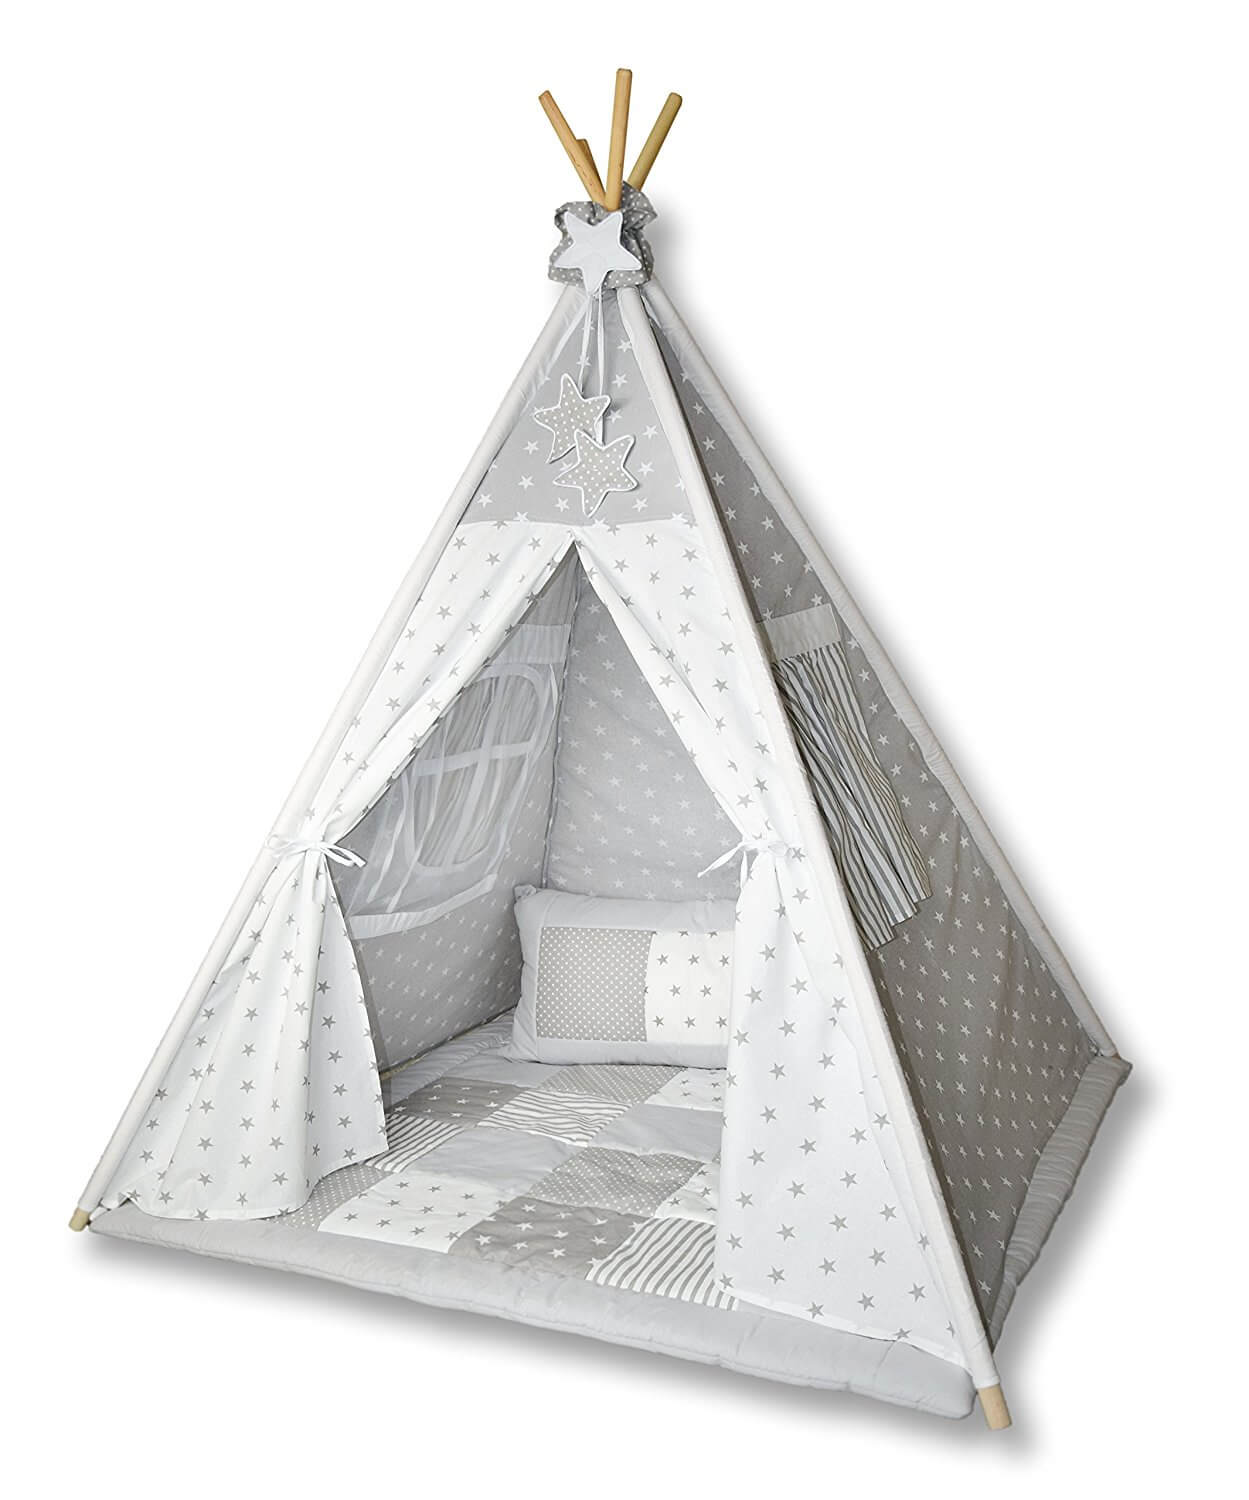 amilian tipi spielzelt f r kinder t01 tipi zelt kinderzimmer. Black Bedroom Furniture Sets. Home Design Ideas